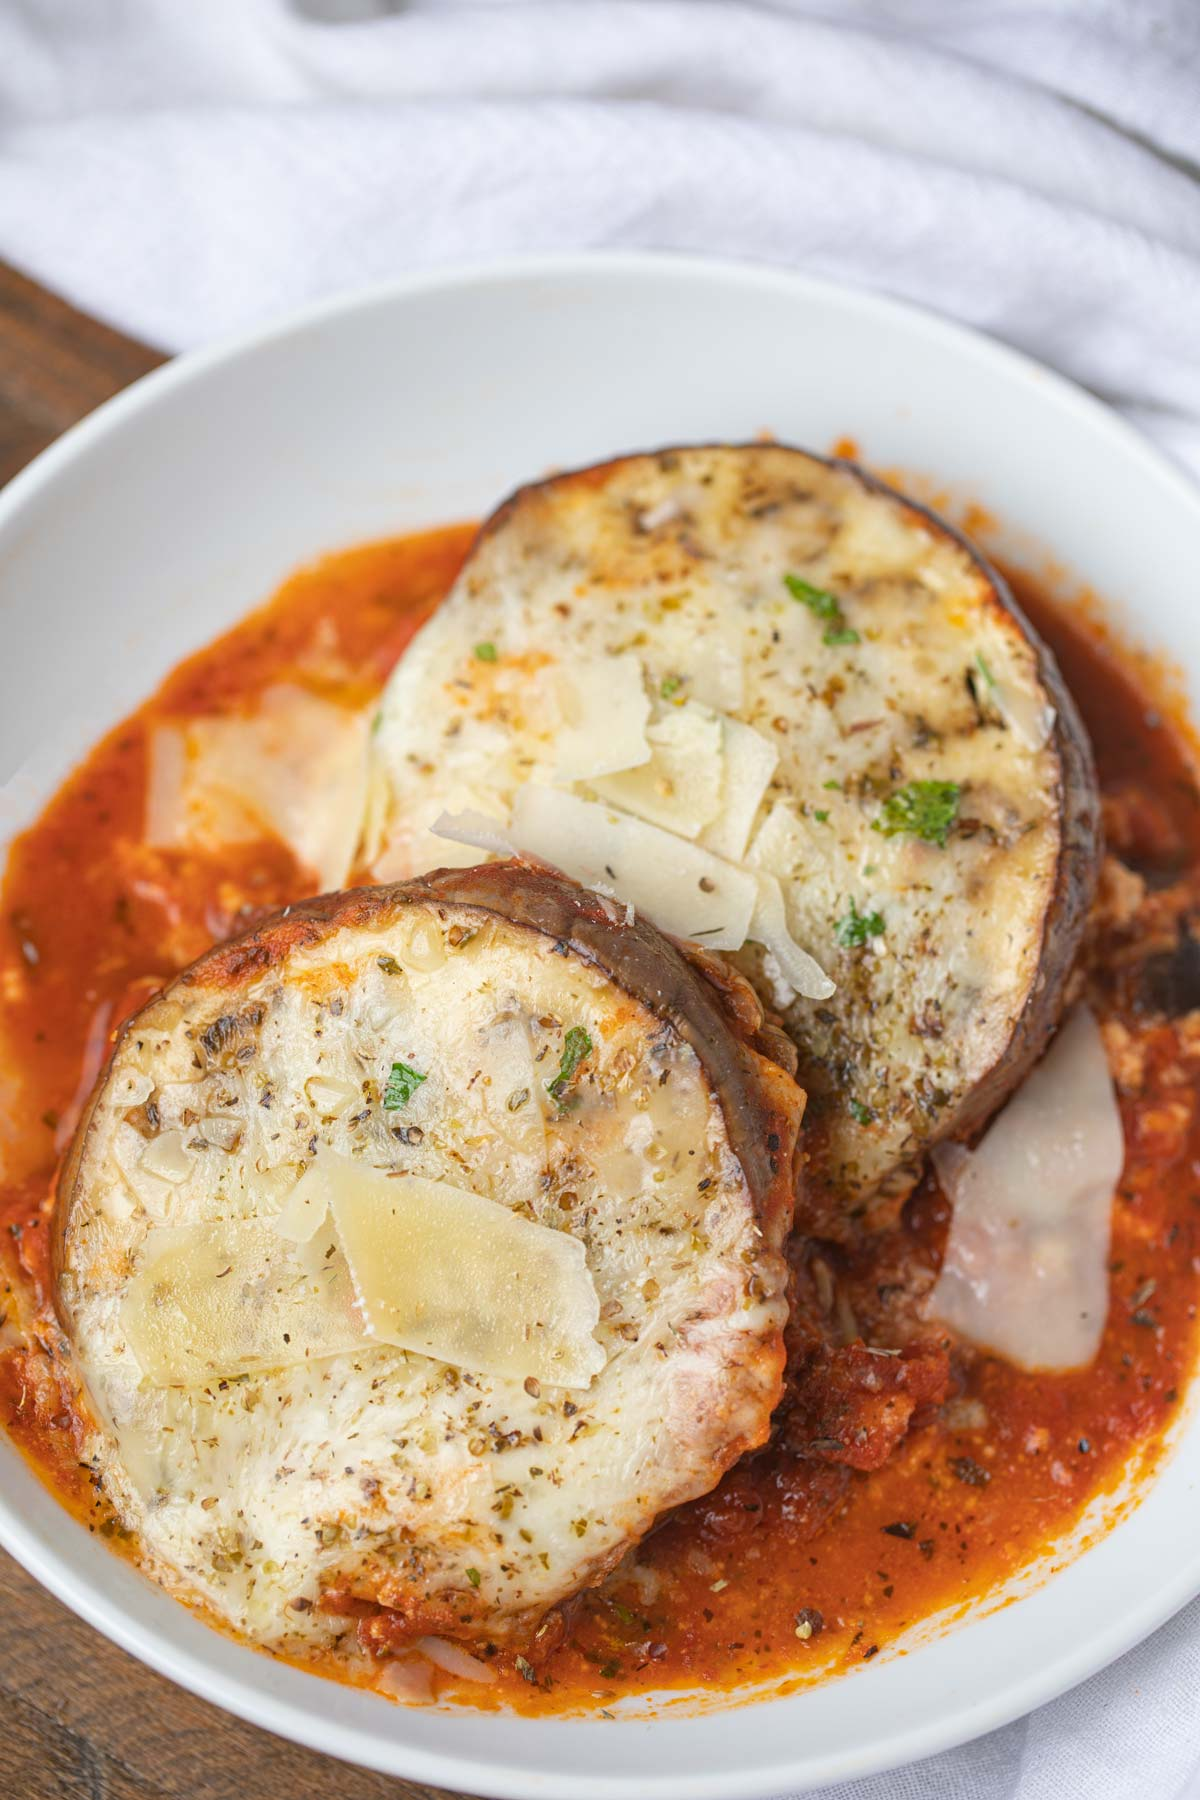 Serving of Eggplant Lasagna in white bowl